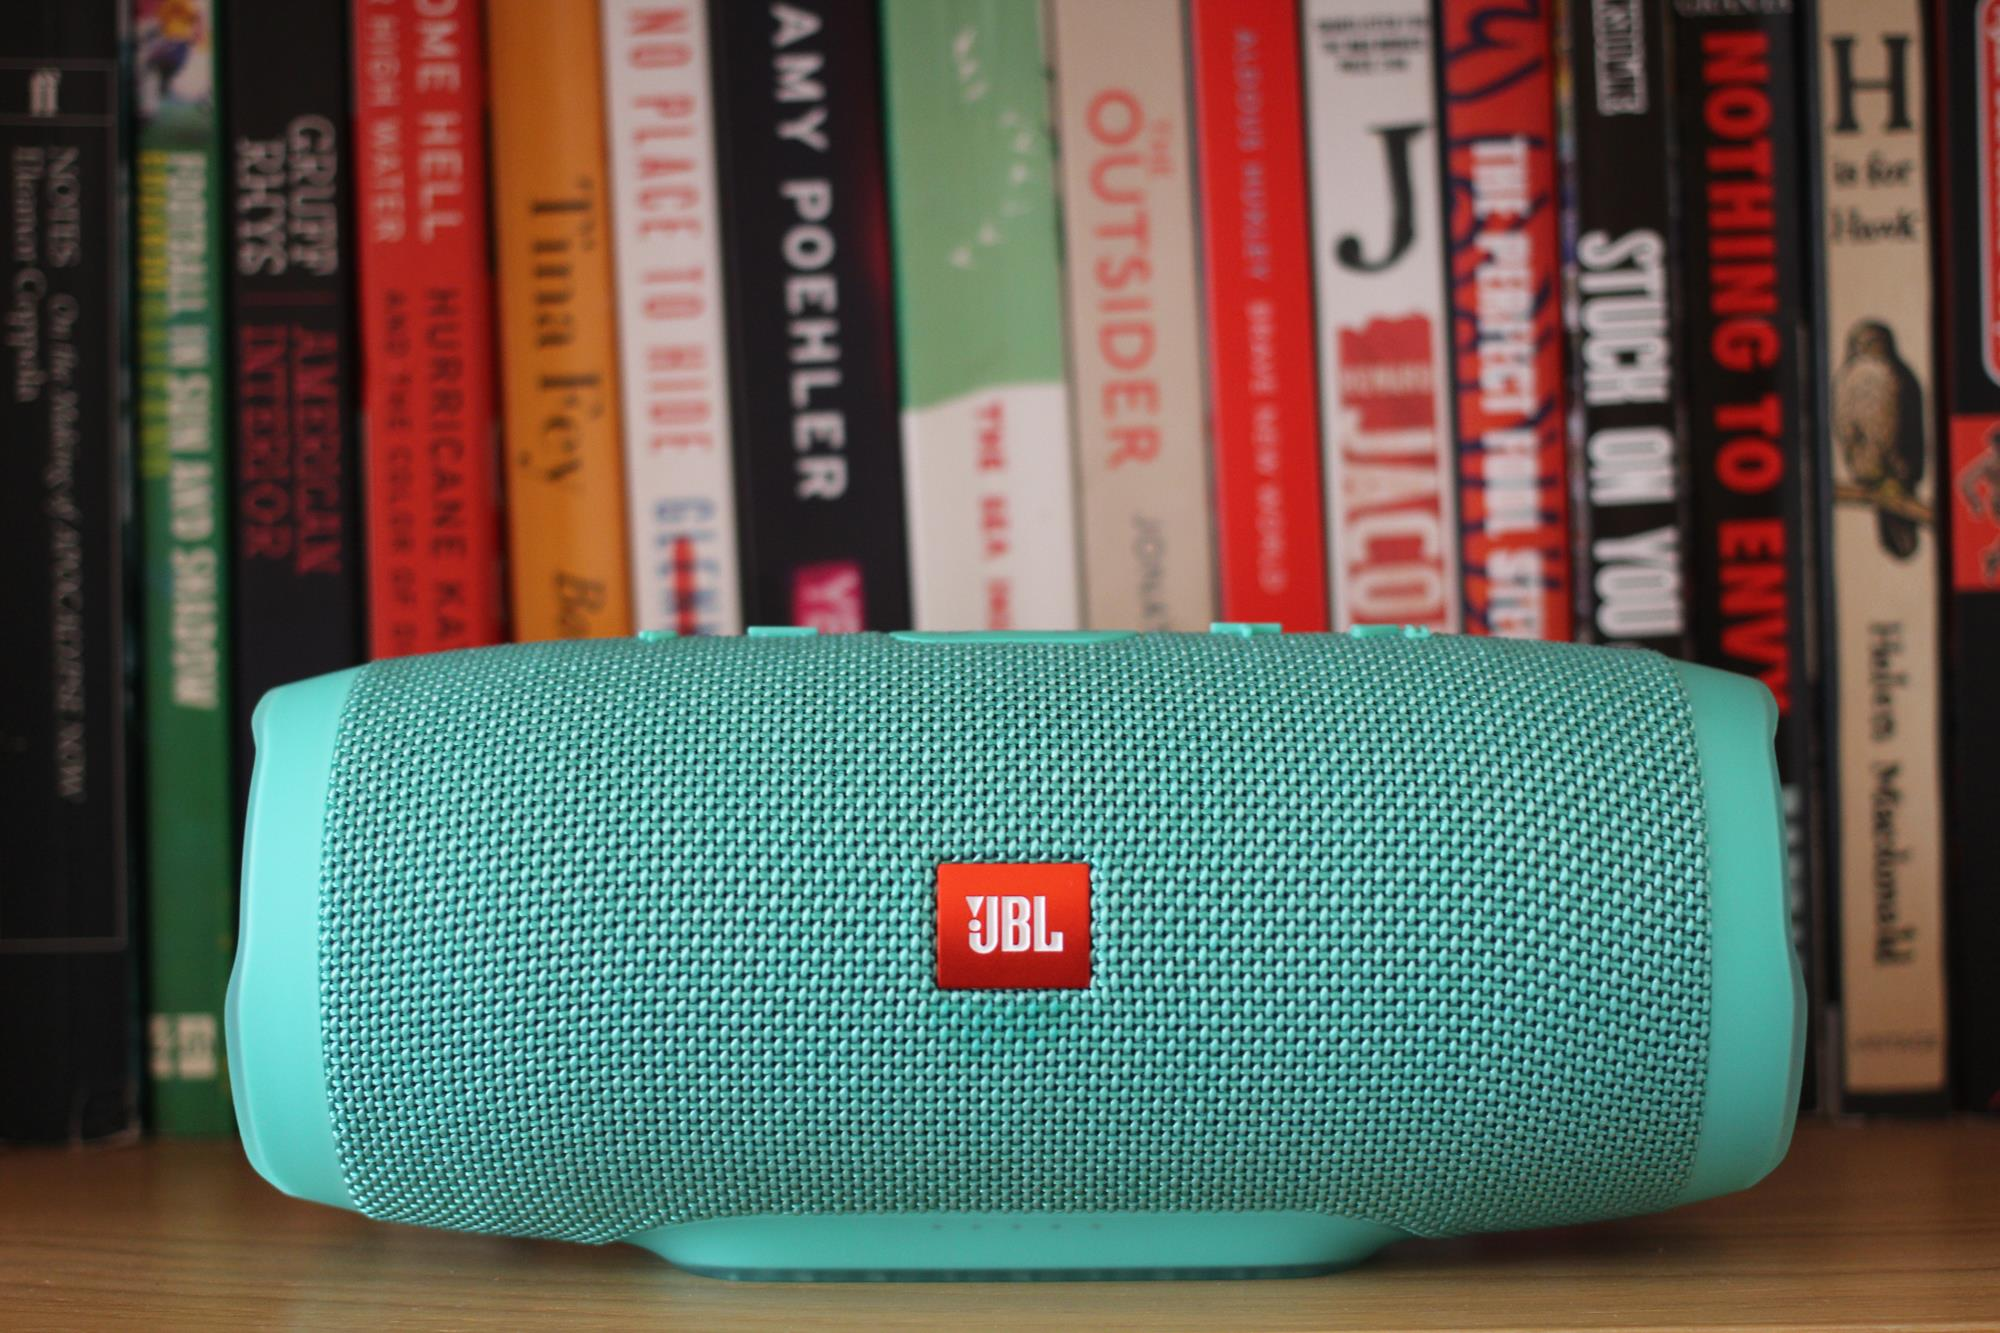 Jbl Charge 3 Review Trusted Reviews Speaker Mini Portable Wireless Charger 1 Design And Features